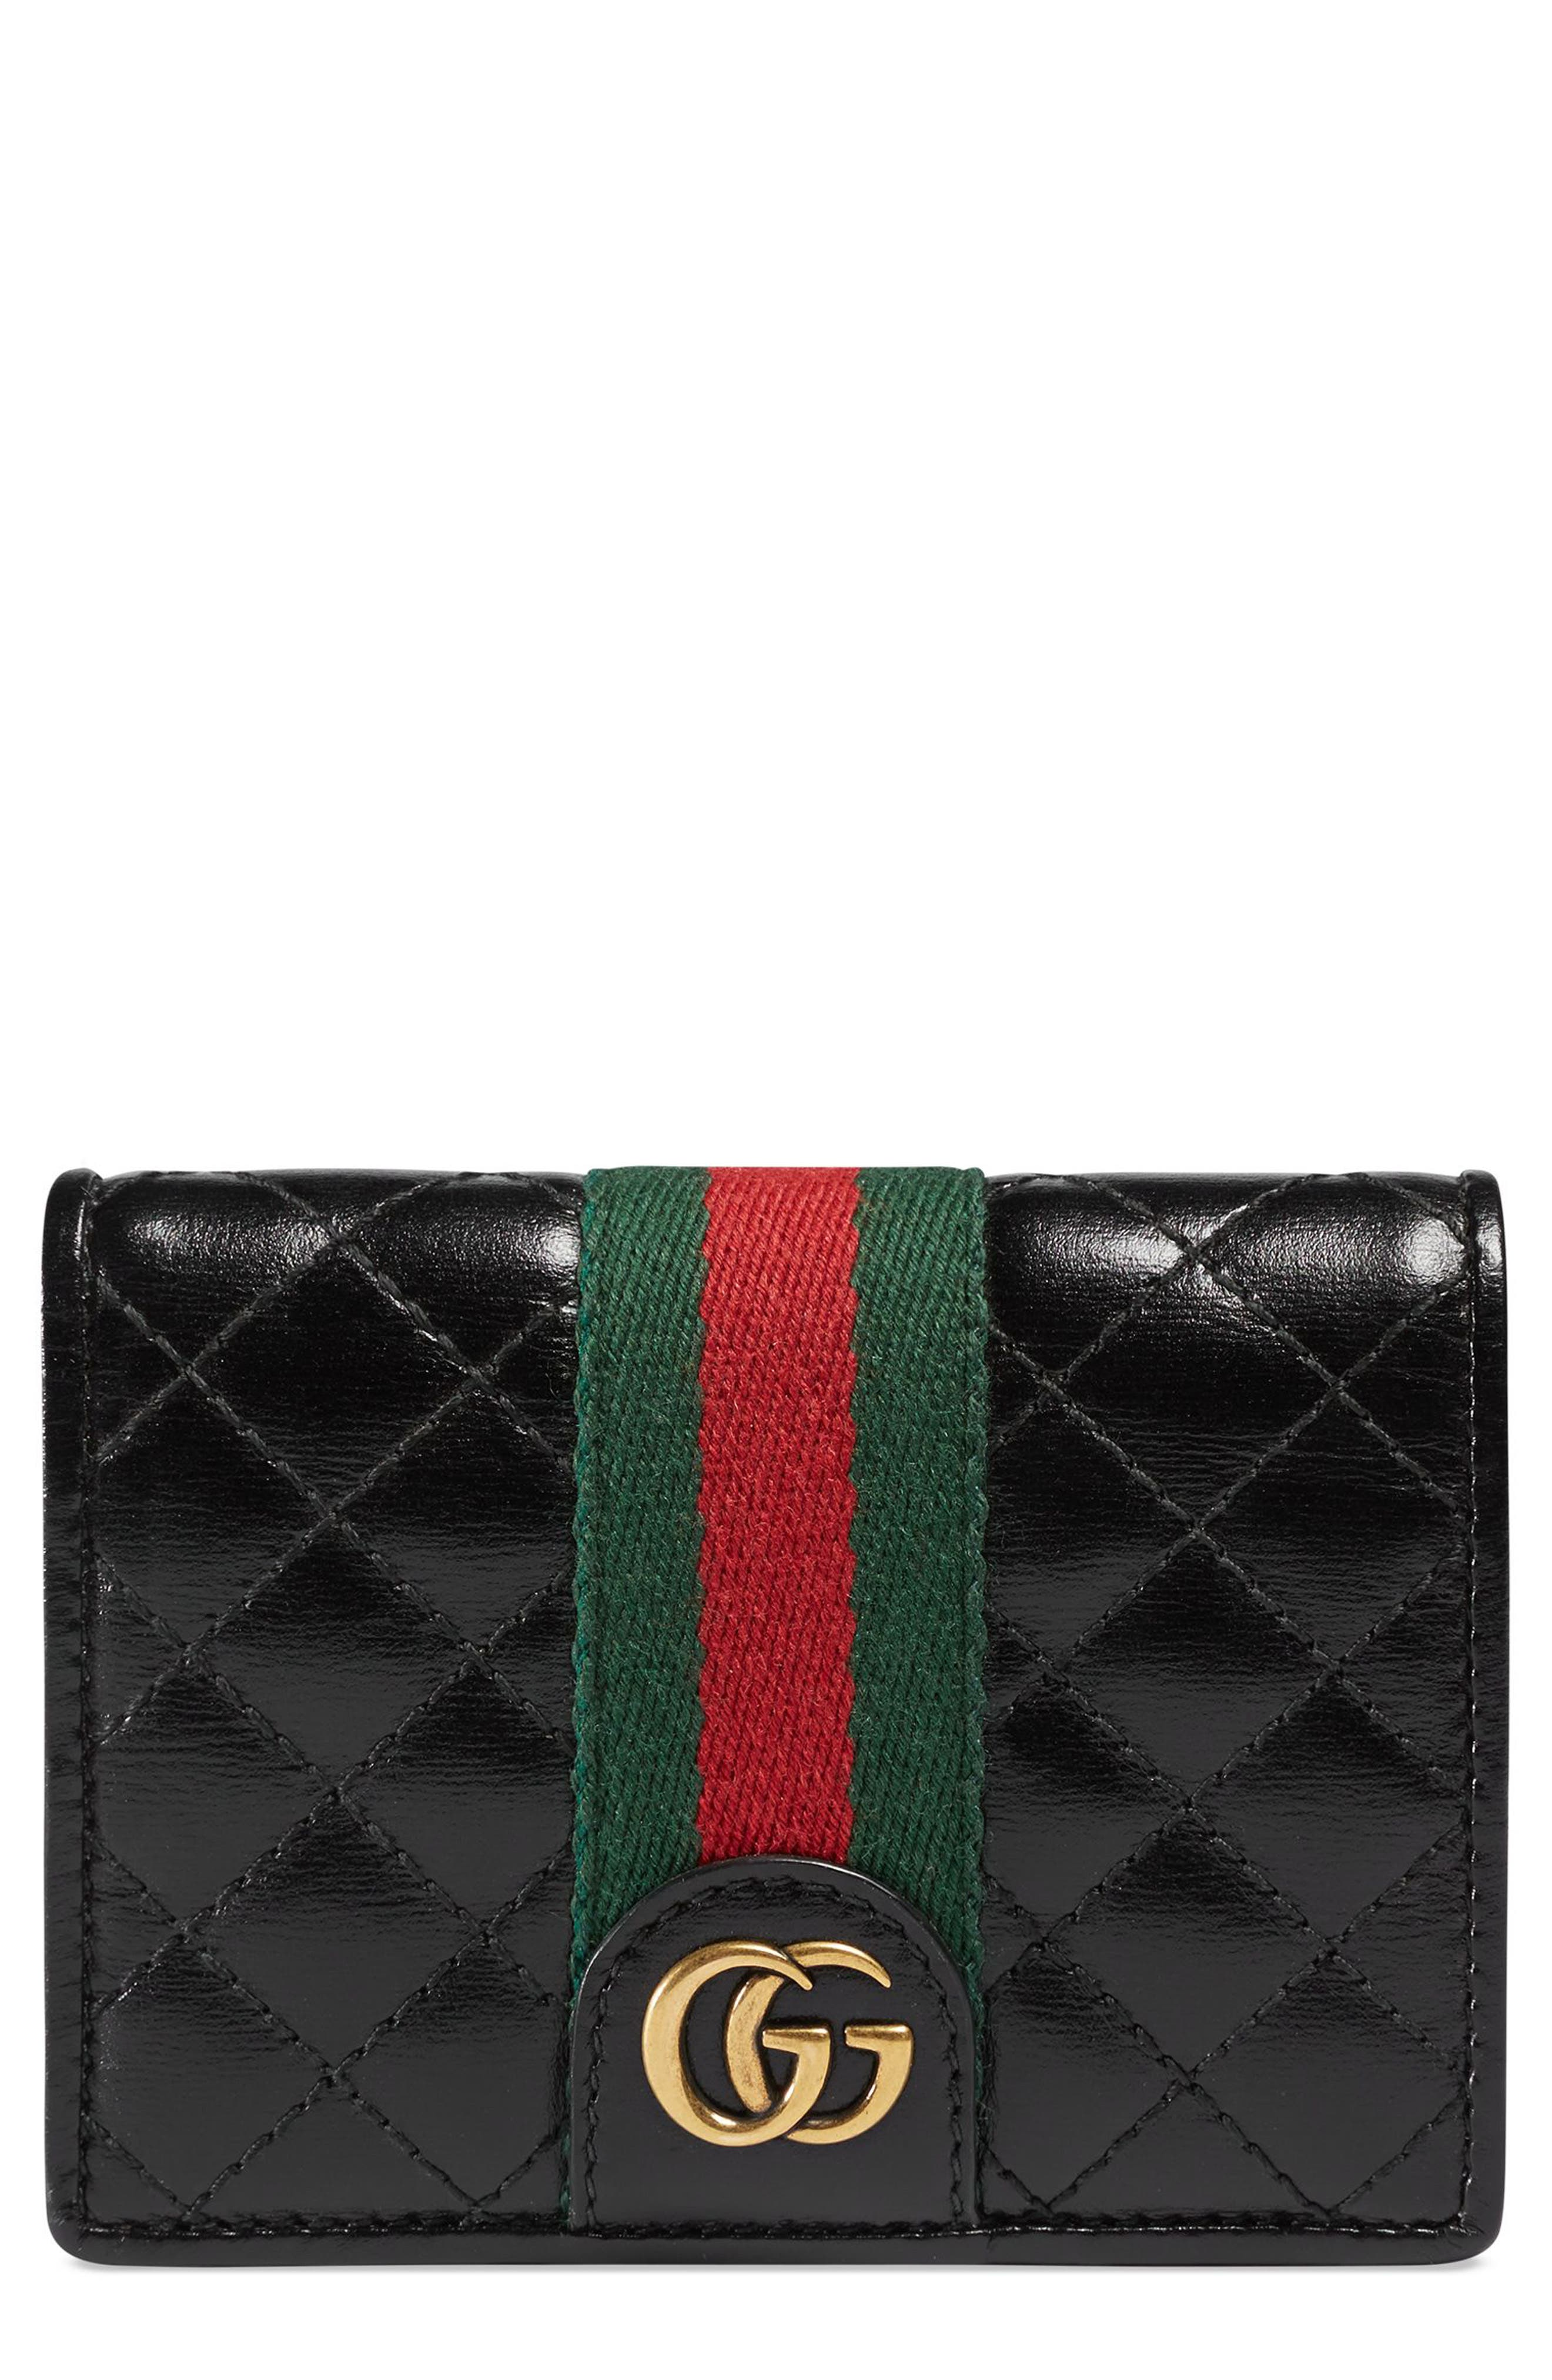 Quilted Leather Card Case,                             Main thumbnail 1, color,                             NERO/ VERT/ RED